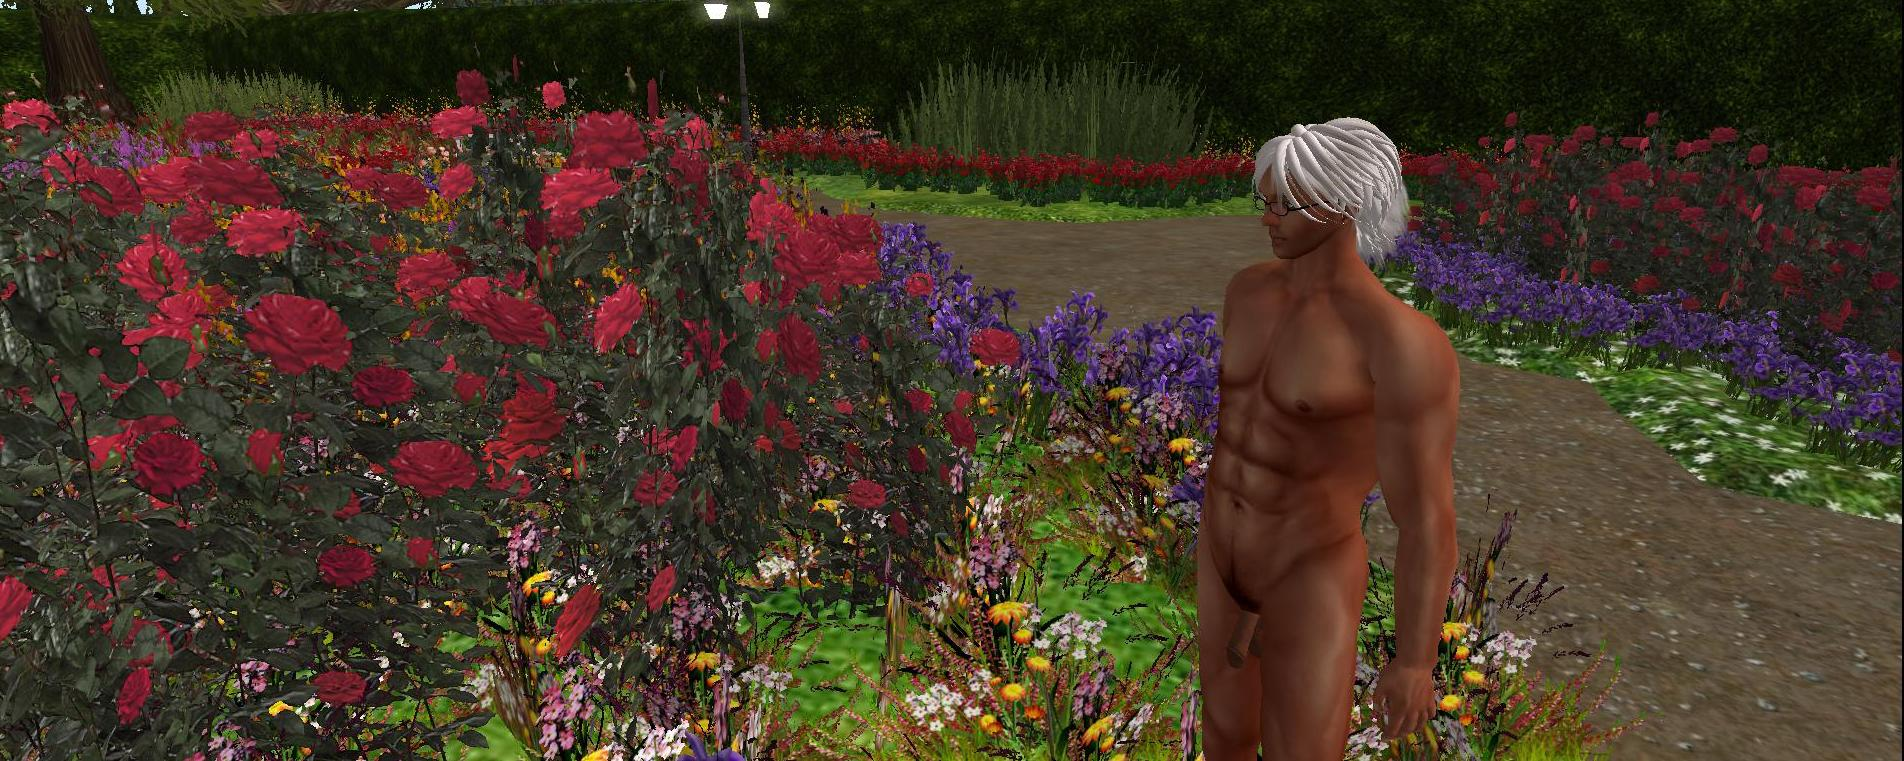 World Naked Gardening Day | the sl naturist